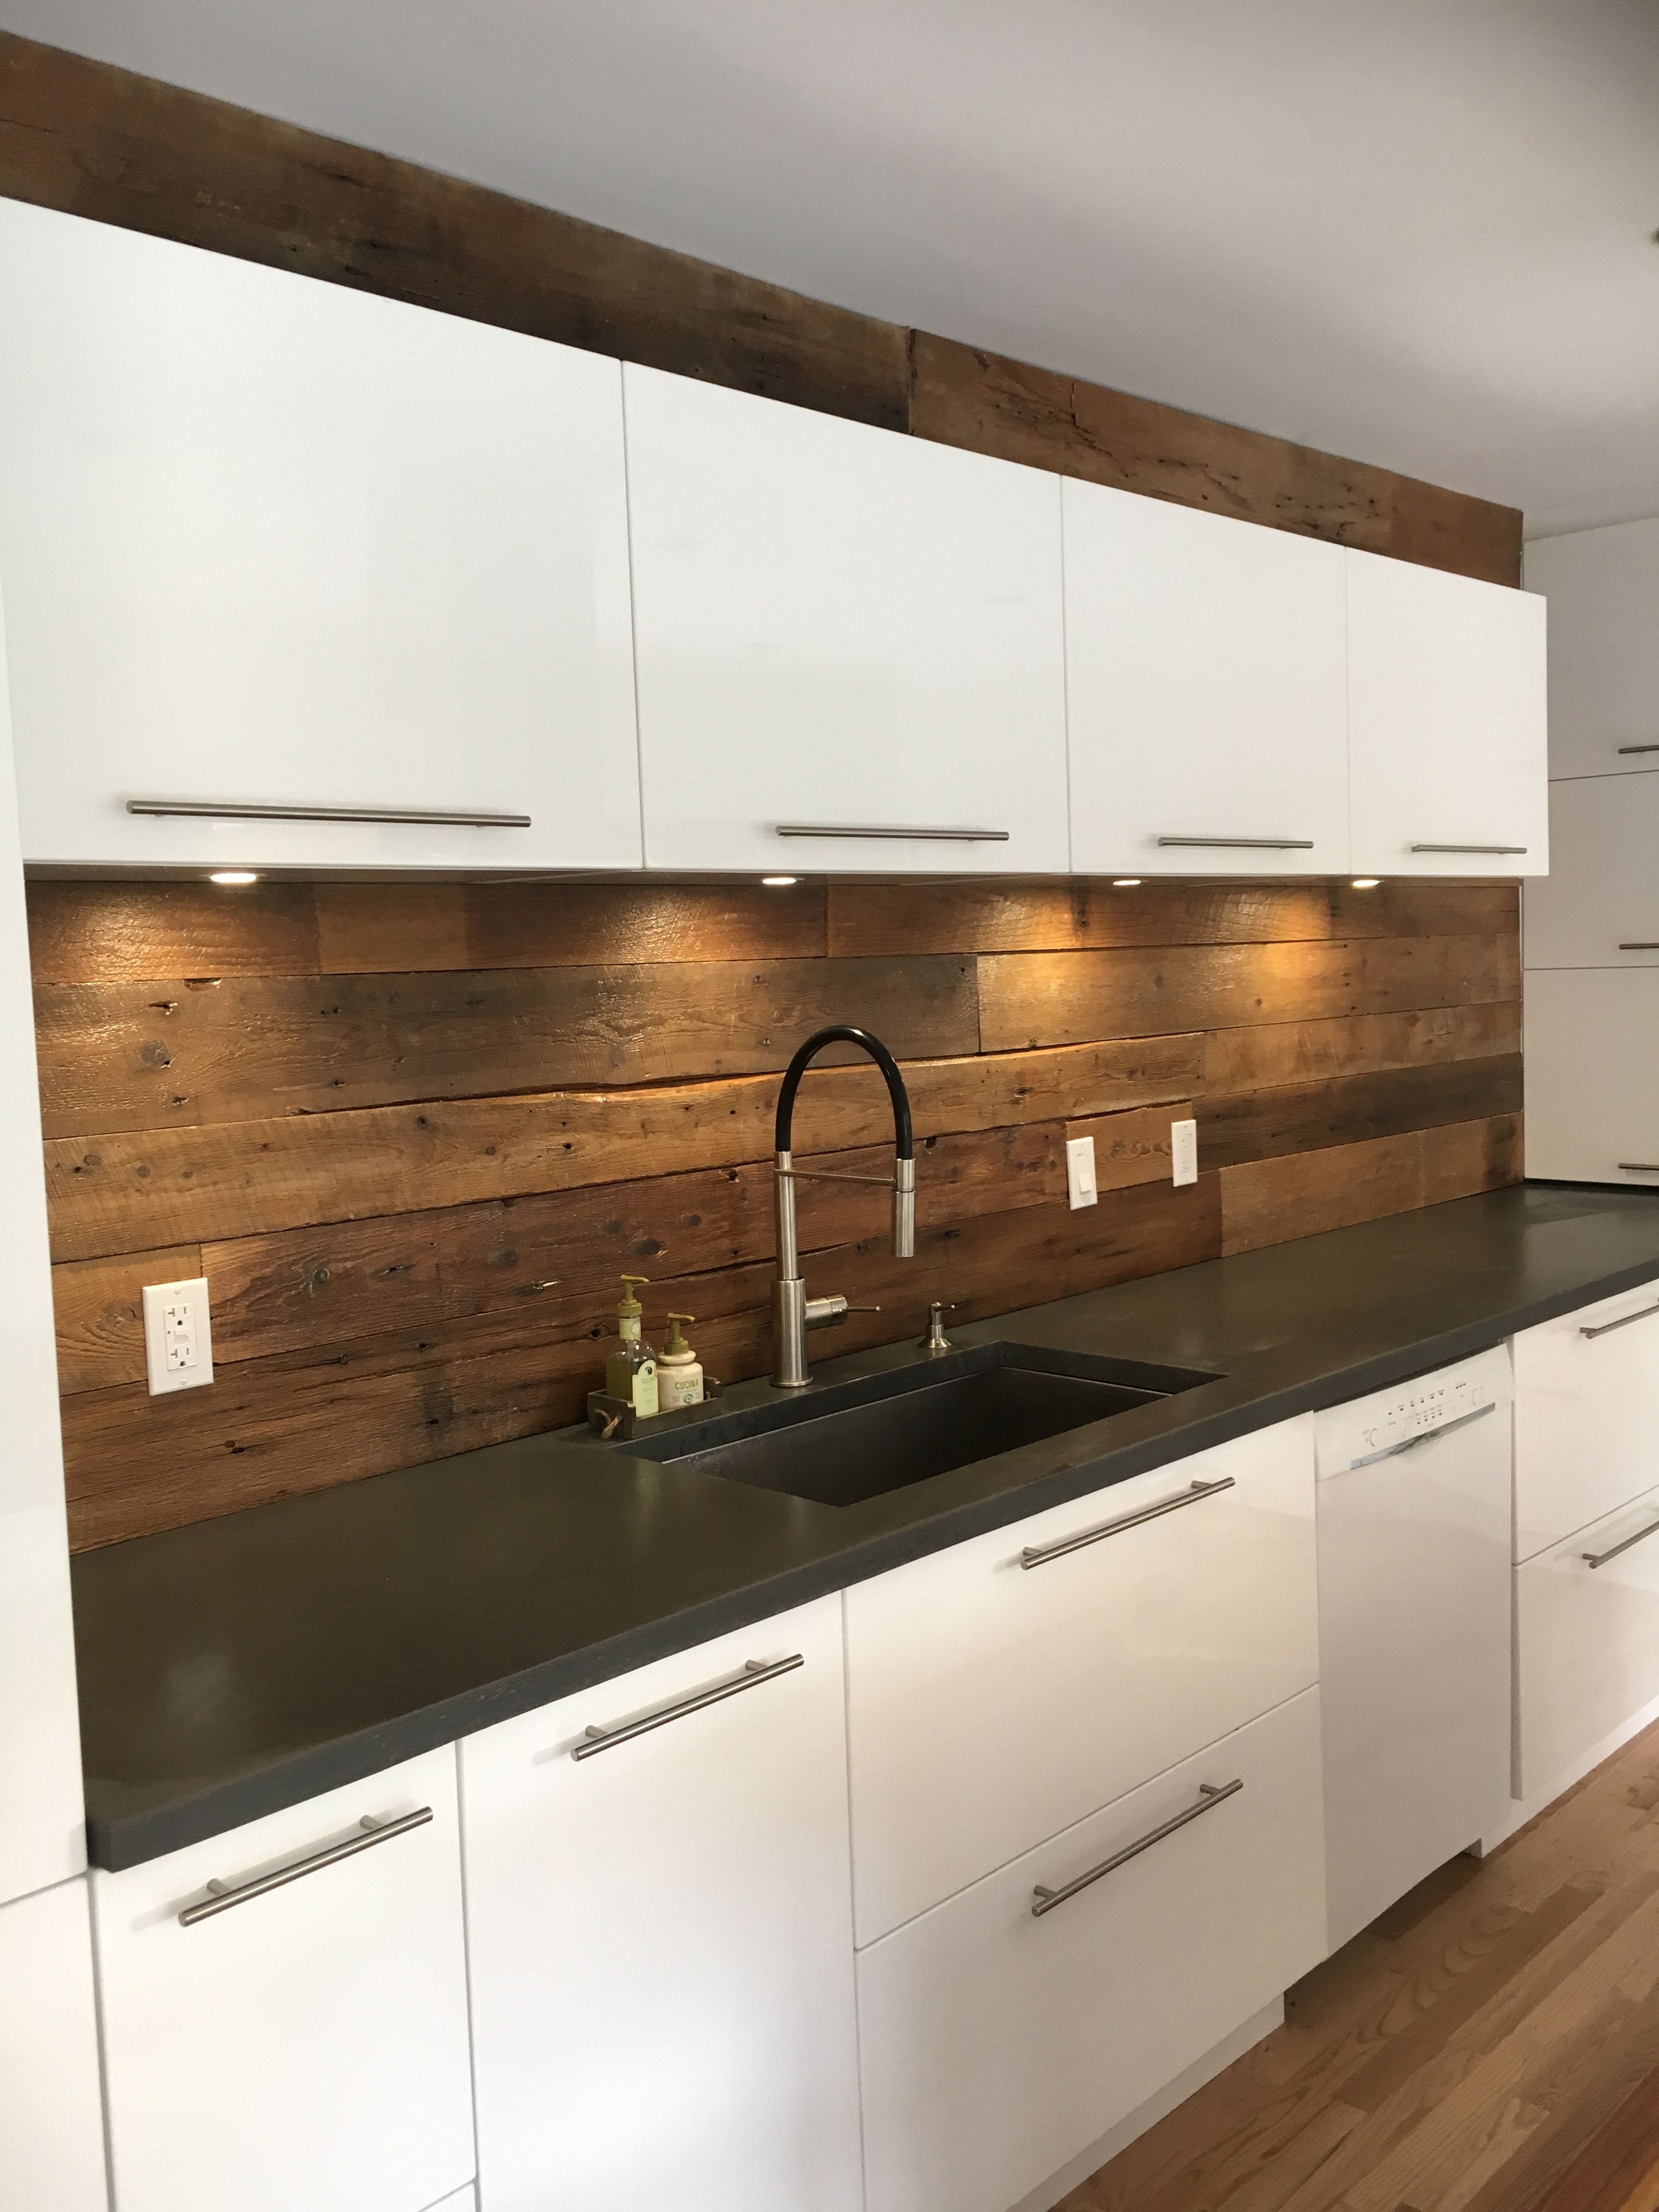 Concrete Countertop Made By Balux Concrete Countertops Countertops Home Remodeling